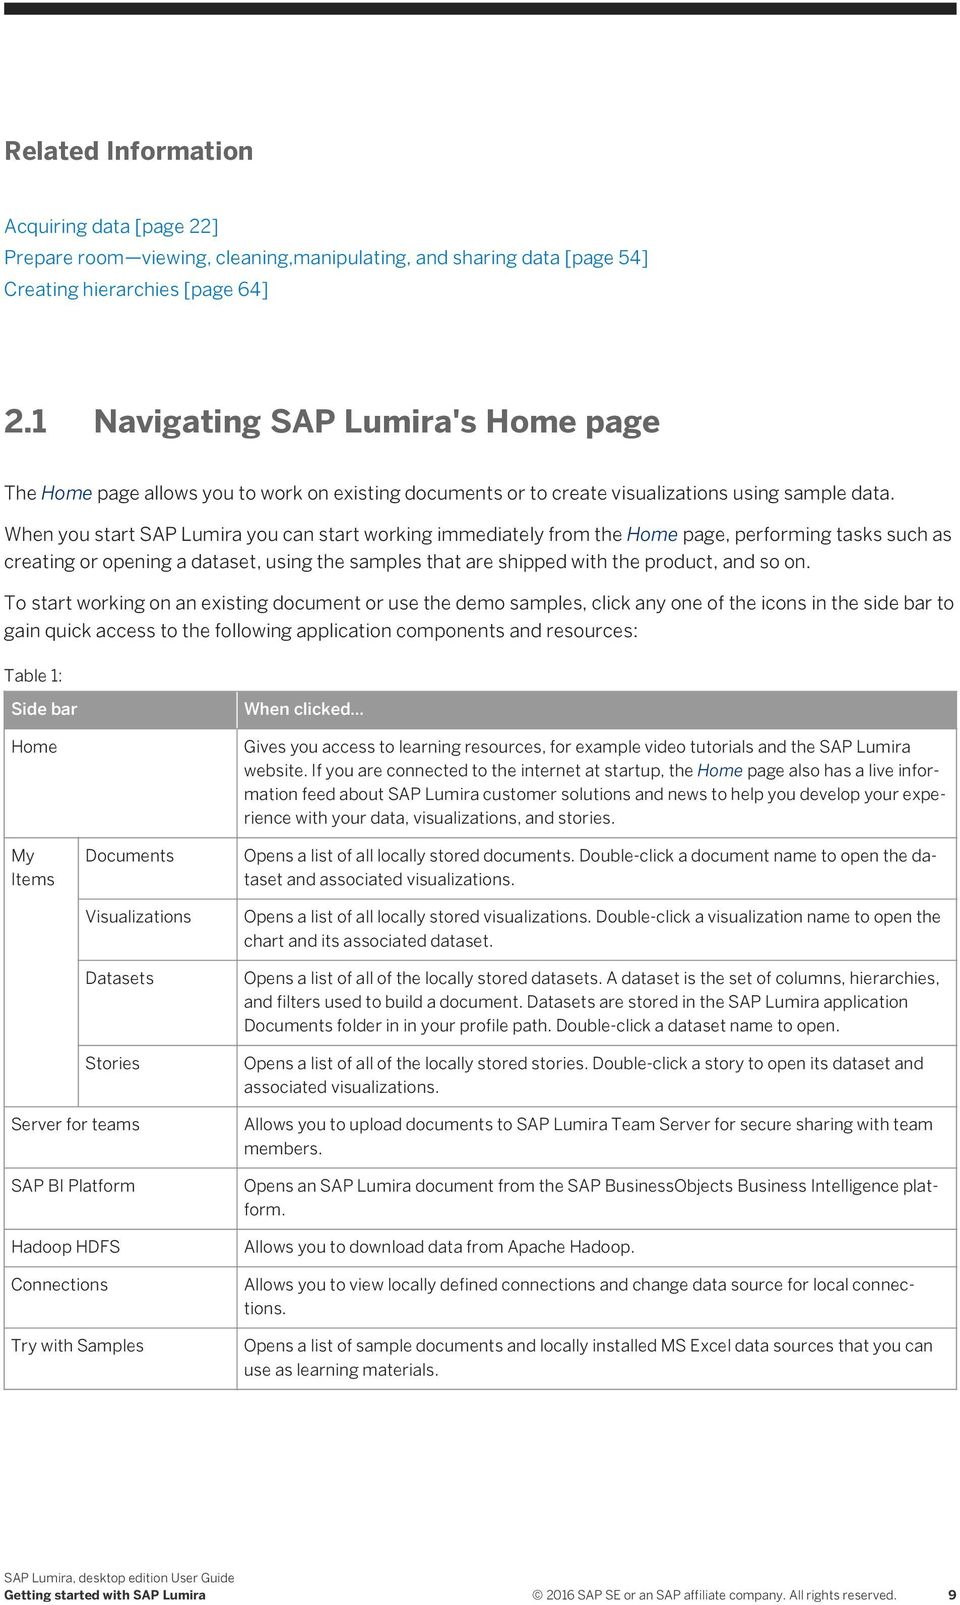 When you start SAP Lumira you can start working immediately from the Home page, performing tasks such as creating or opening a dataset, using the samples that are shipped with the product, and so on.